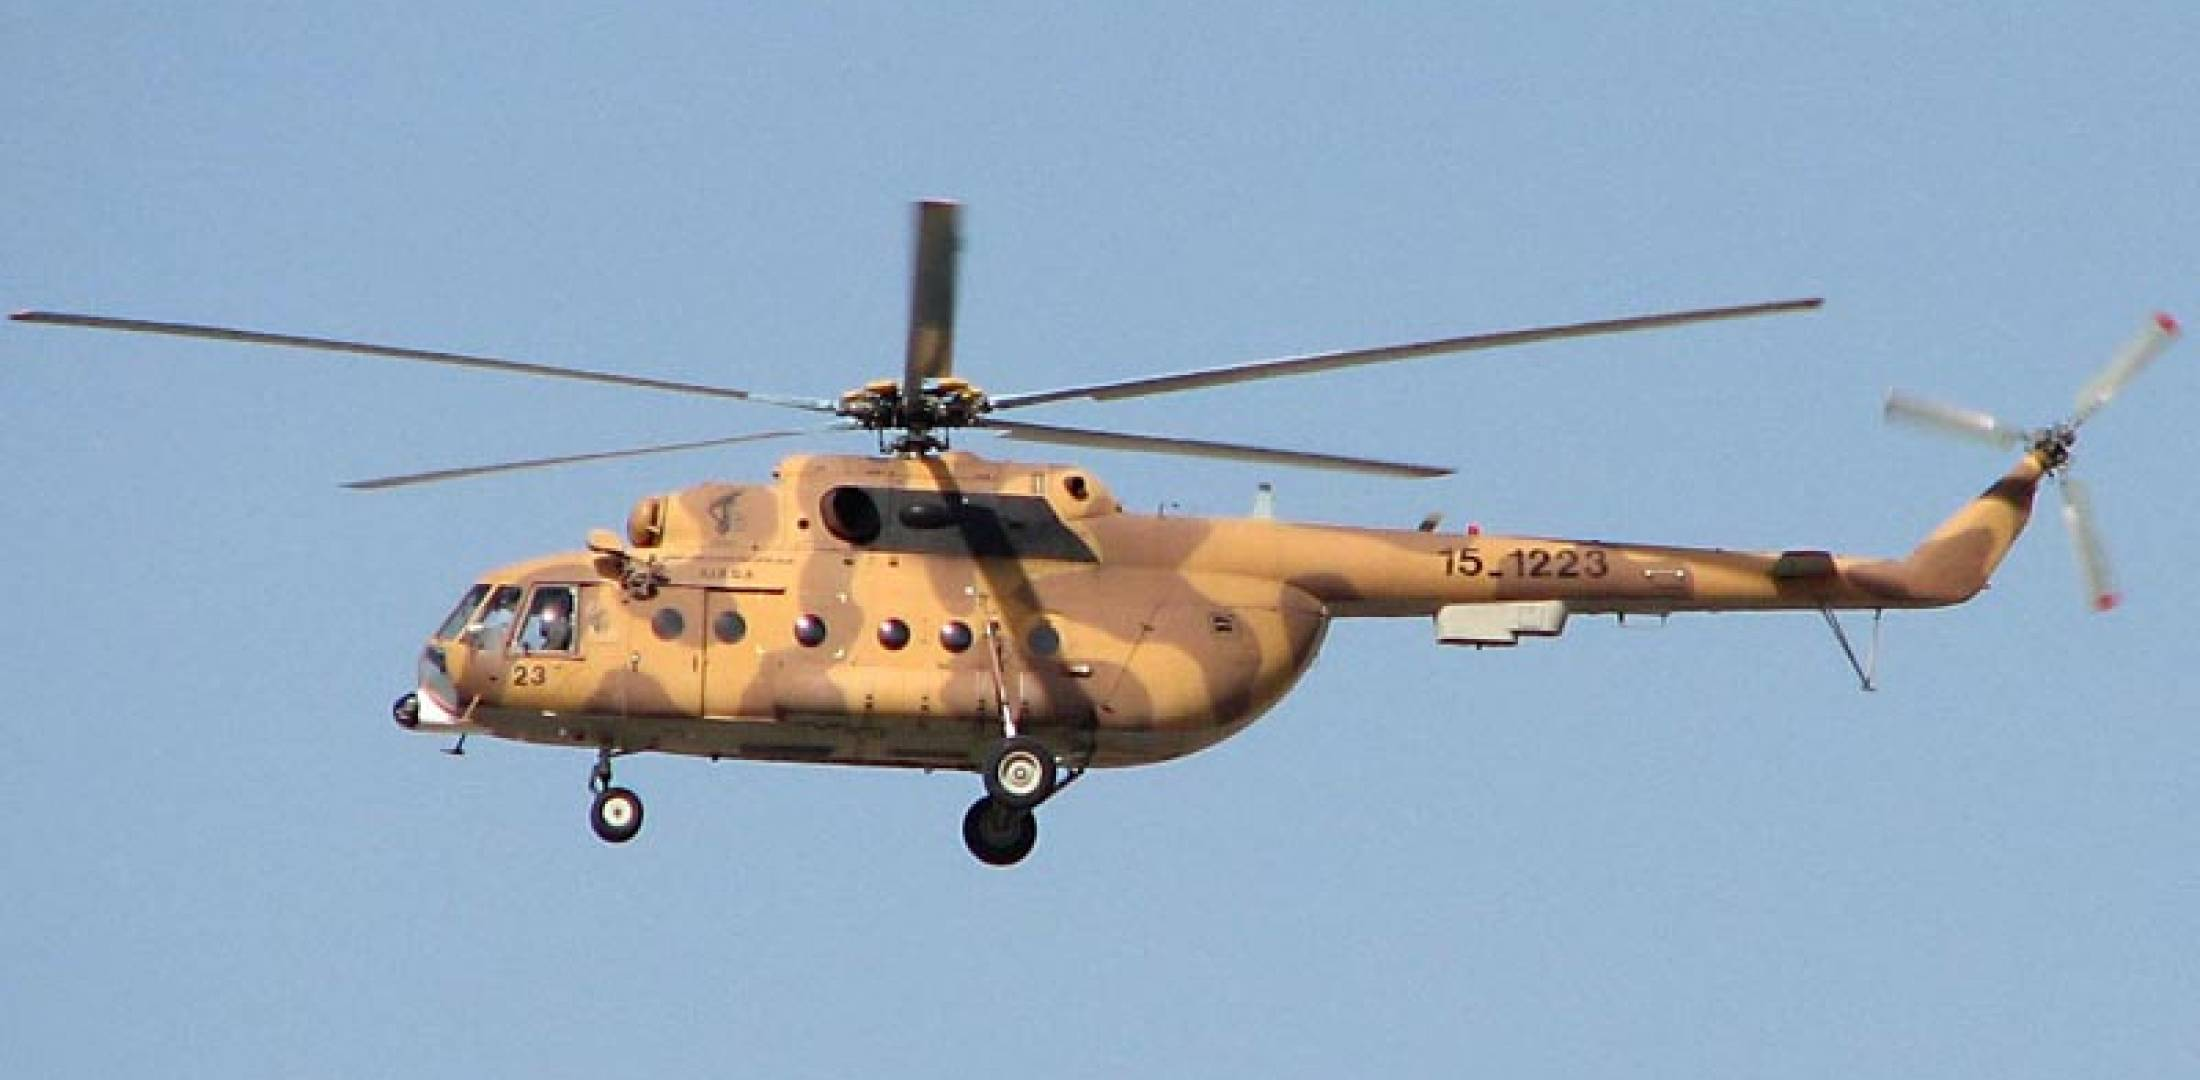 Having recently completed delivery of 32 Mi-171s to China, Russian Helicopters i